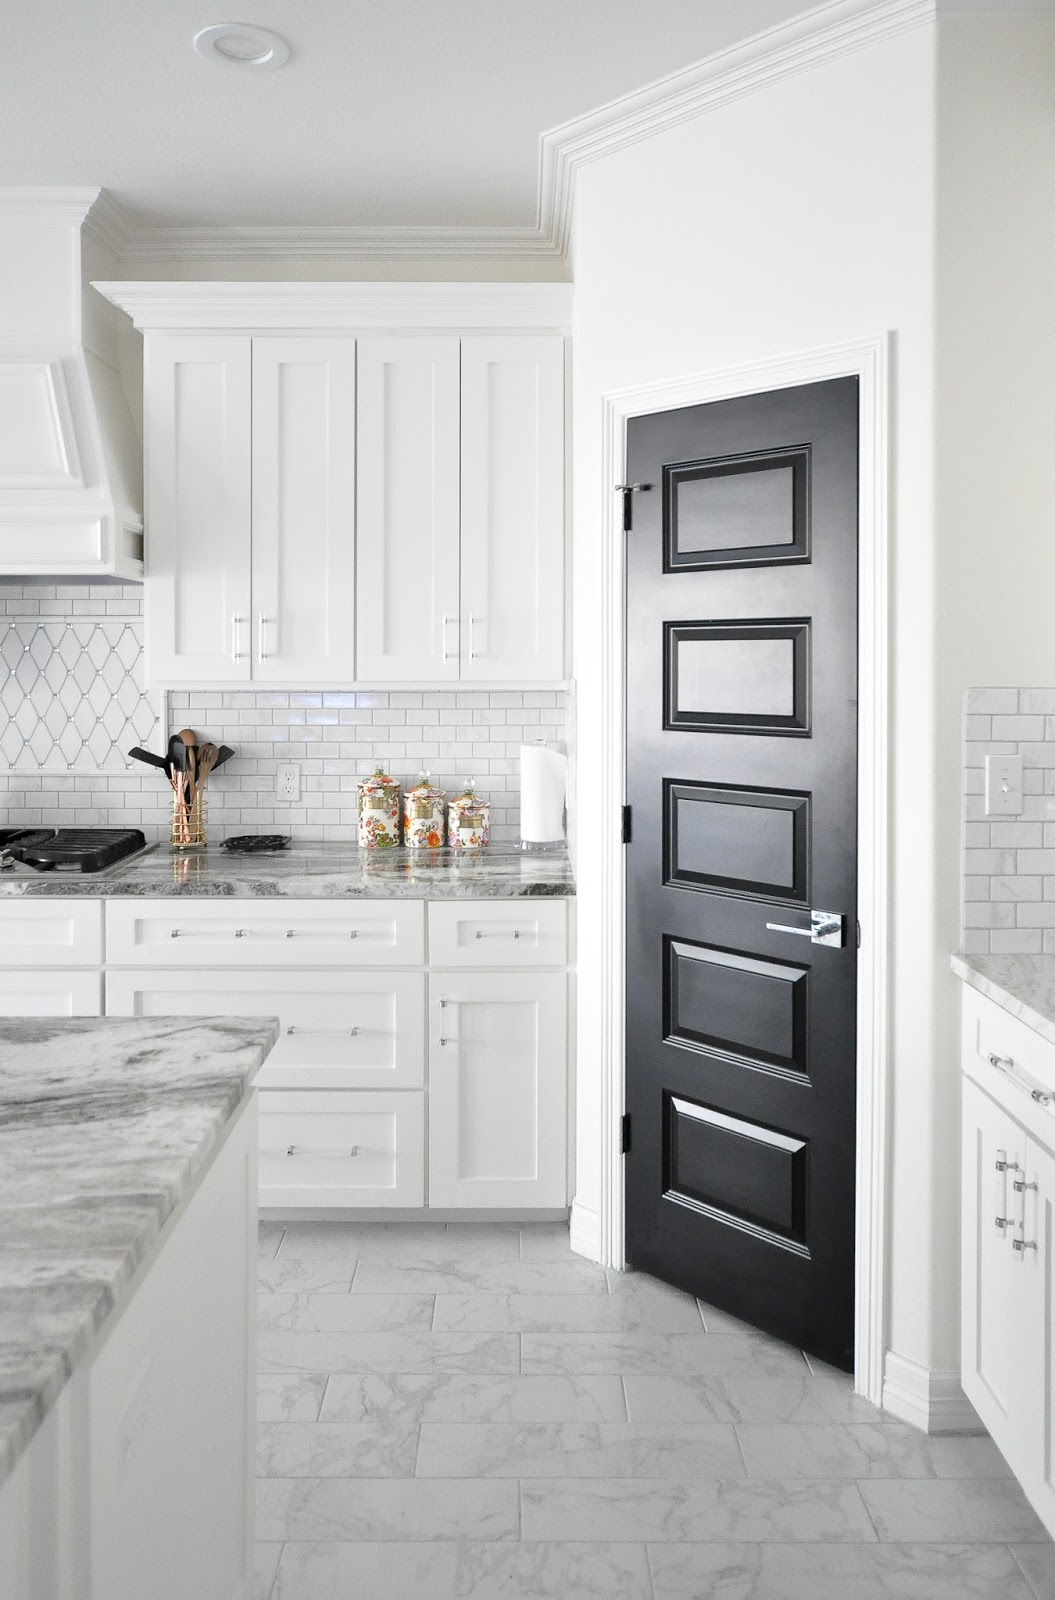 Gorgeous white shaker cabinet kitchen cabinets with lucite hardware and a black pantry door. The marble backsplash and counter tops look so chic!